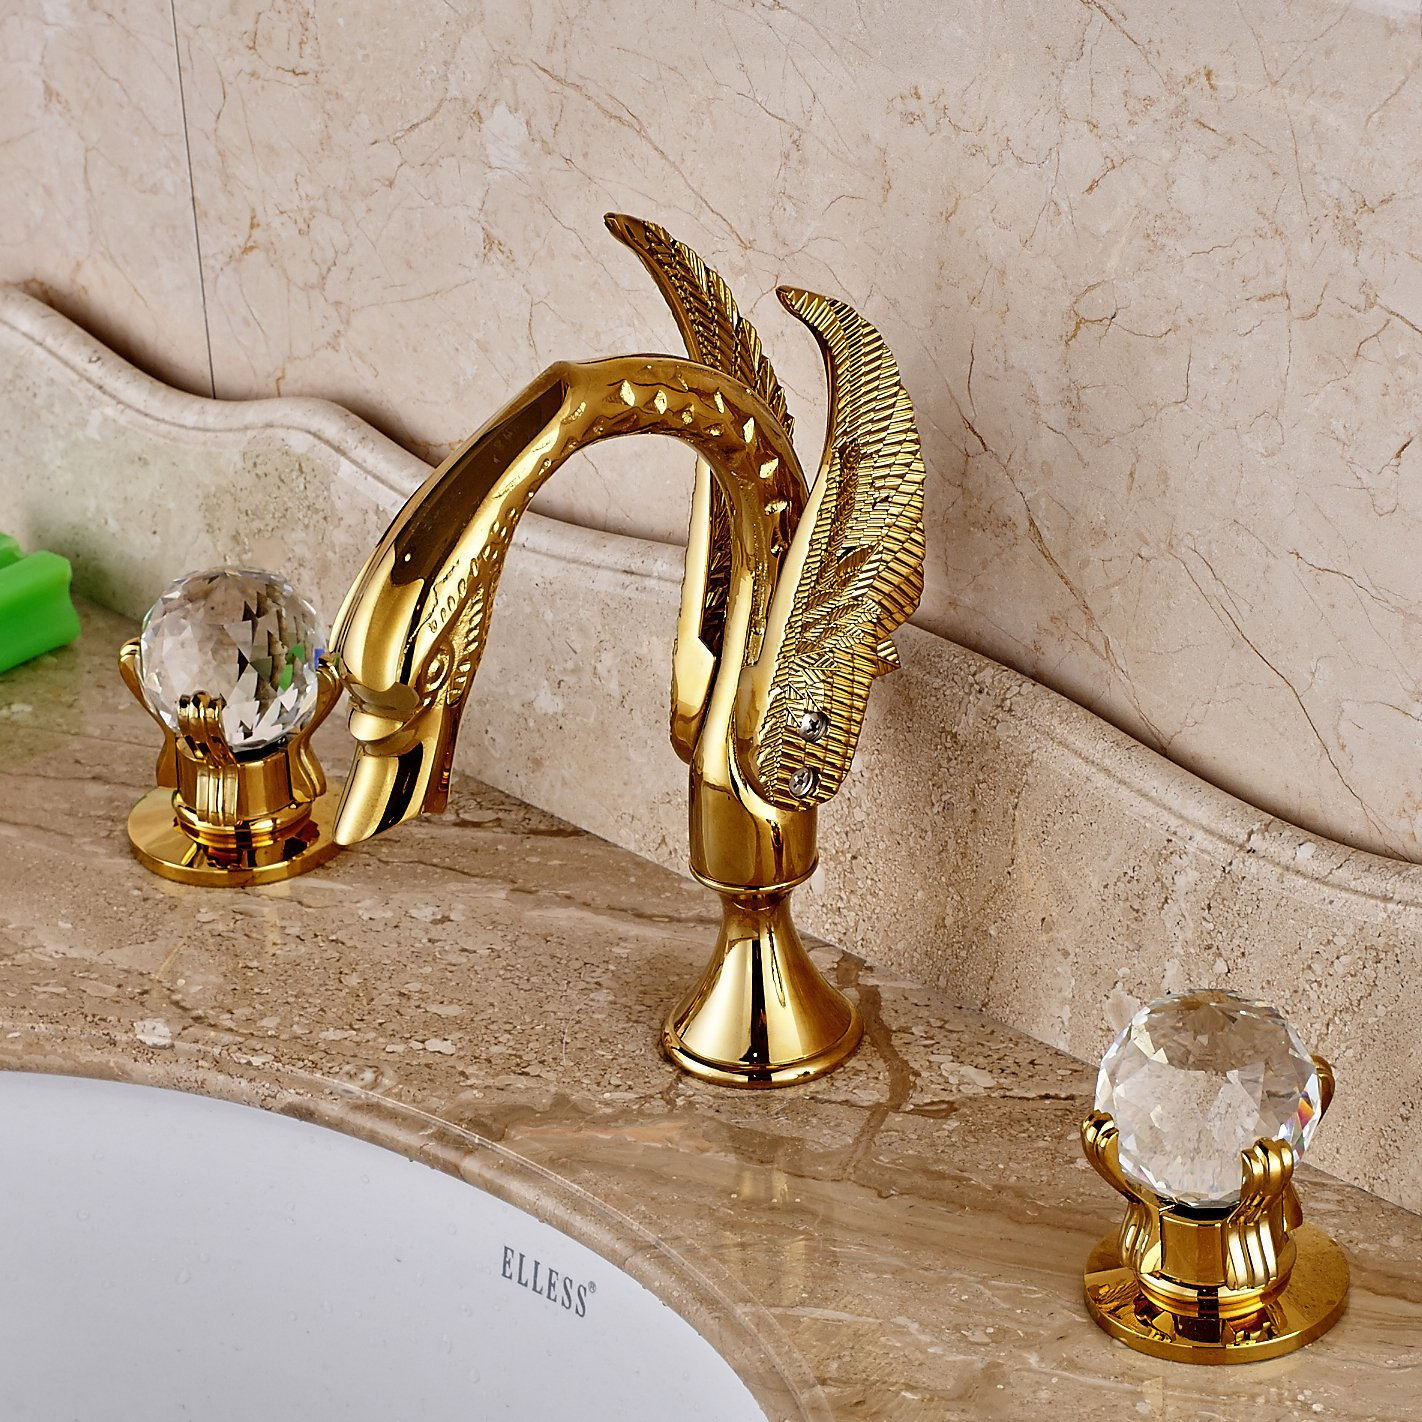 Rozin Double Crystal Knobs Basin Faucet Widepspread 3 Holes Sink Mixer Tap Gold Finish by Rozin